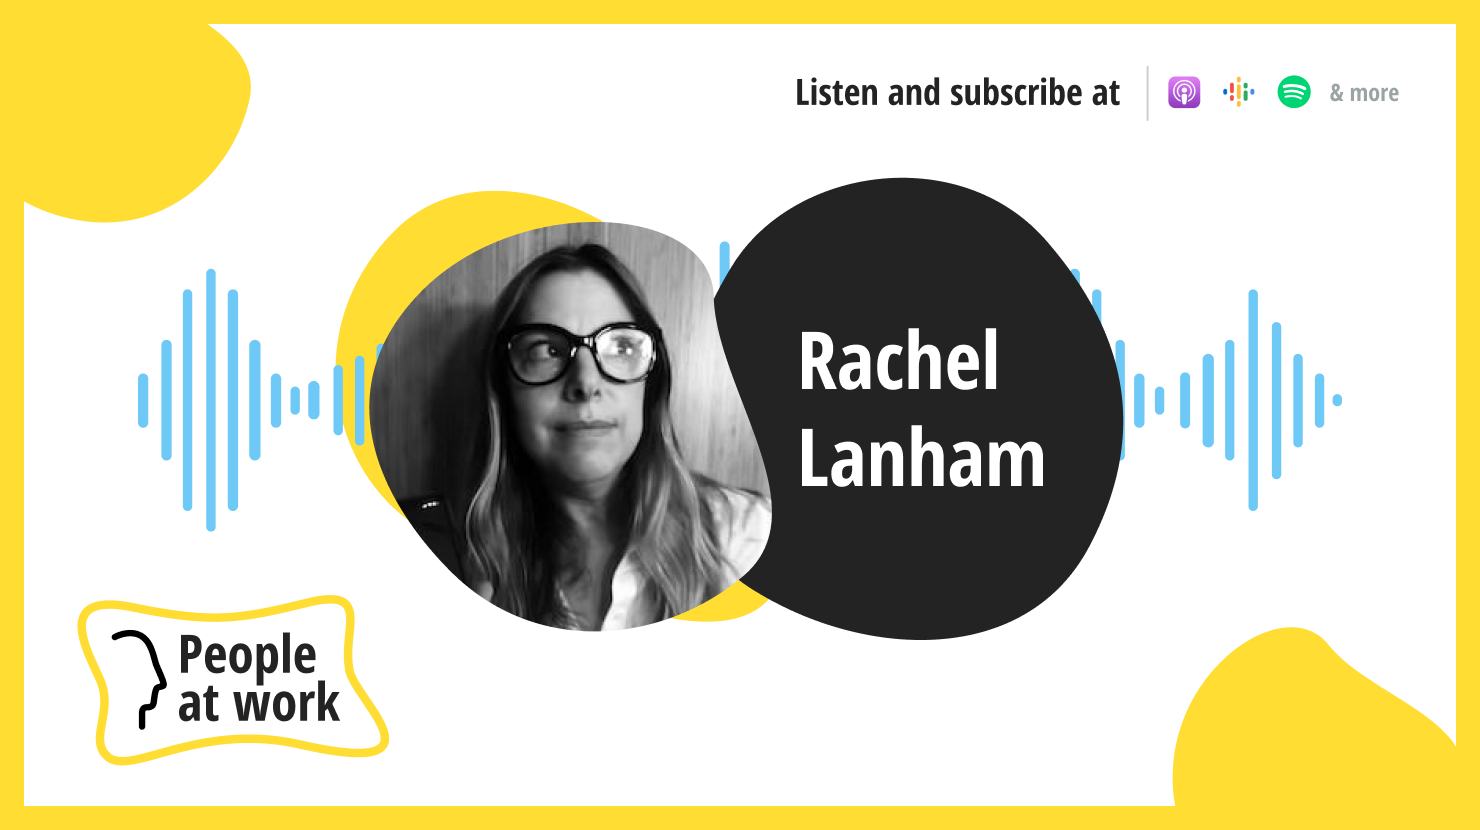 The challenges and opportunities of hybrid work with Rachel Lanham